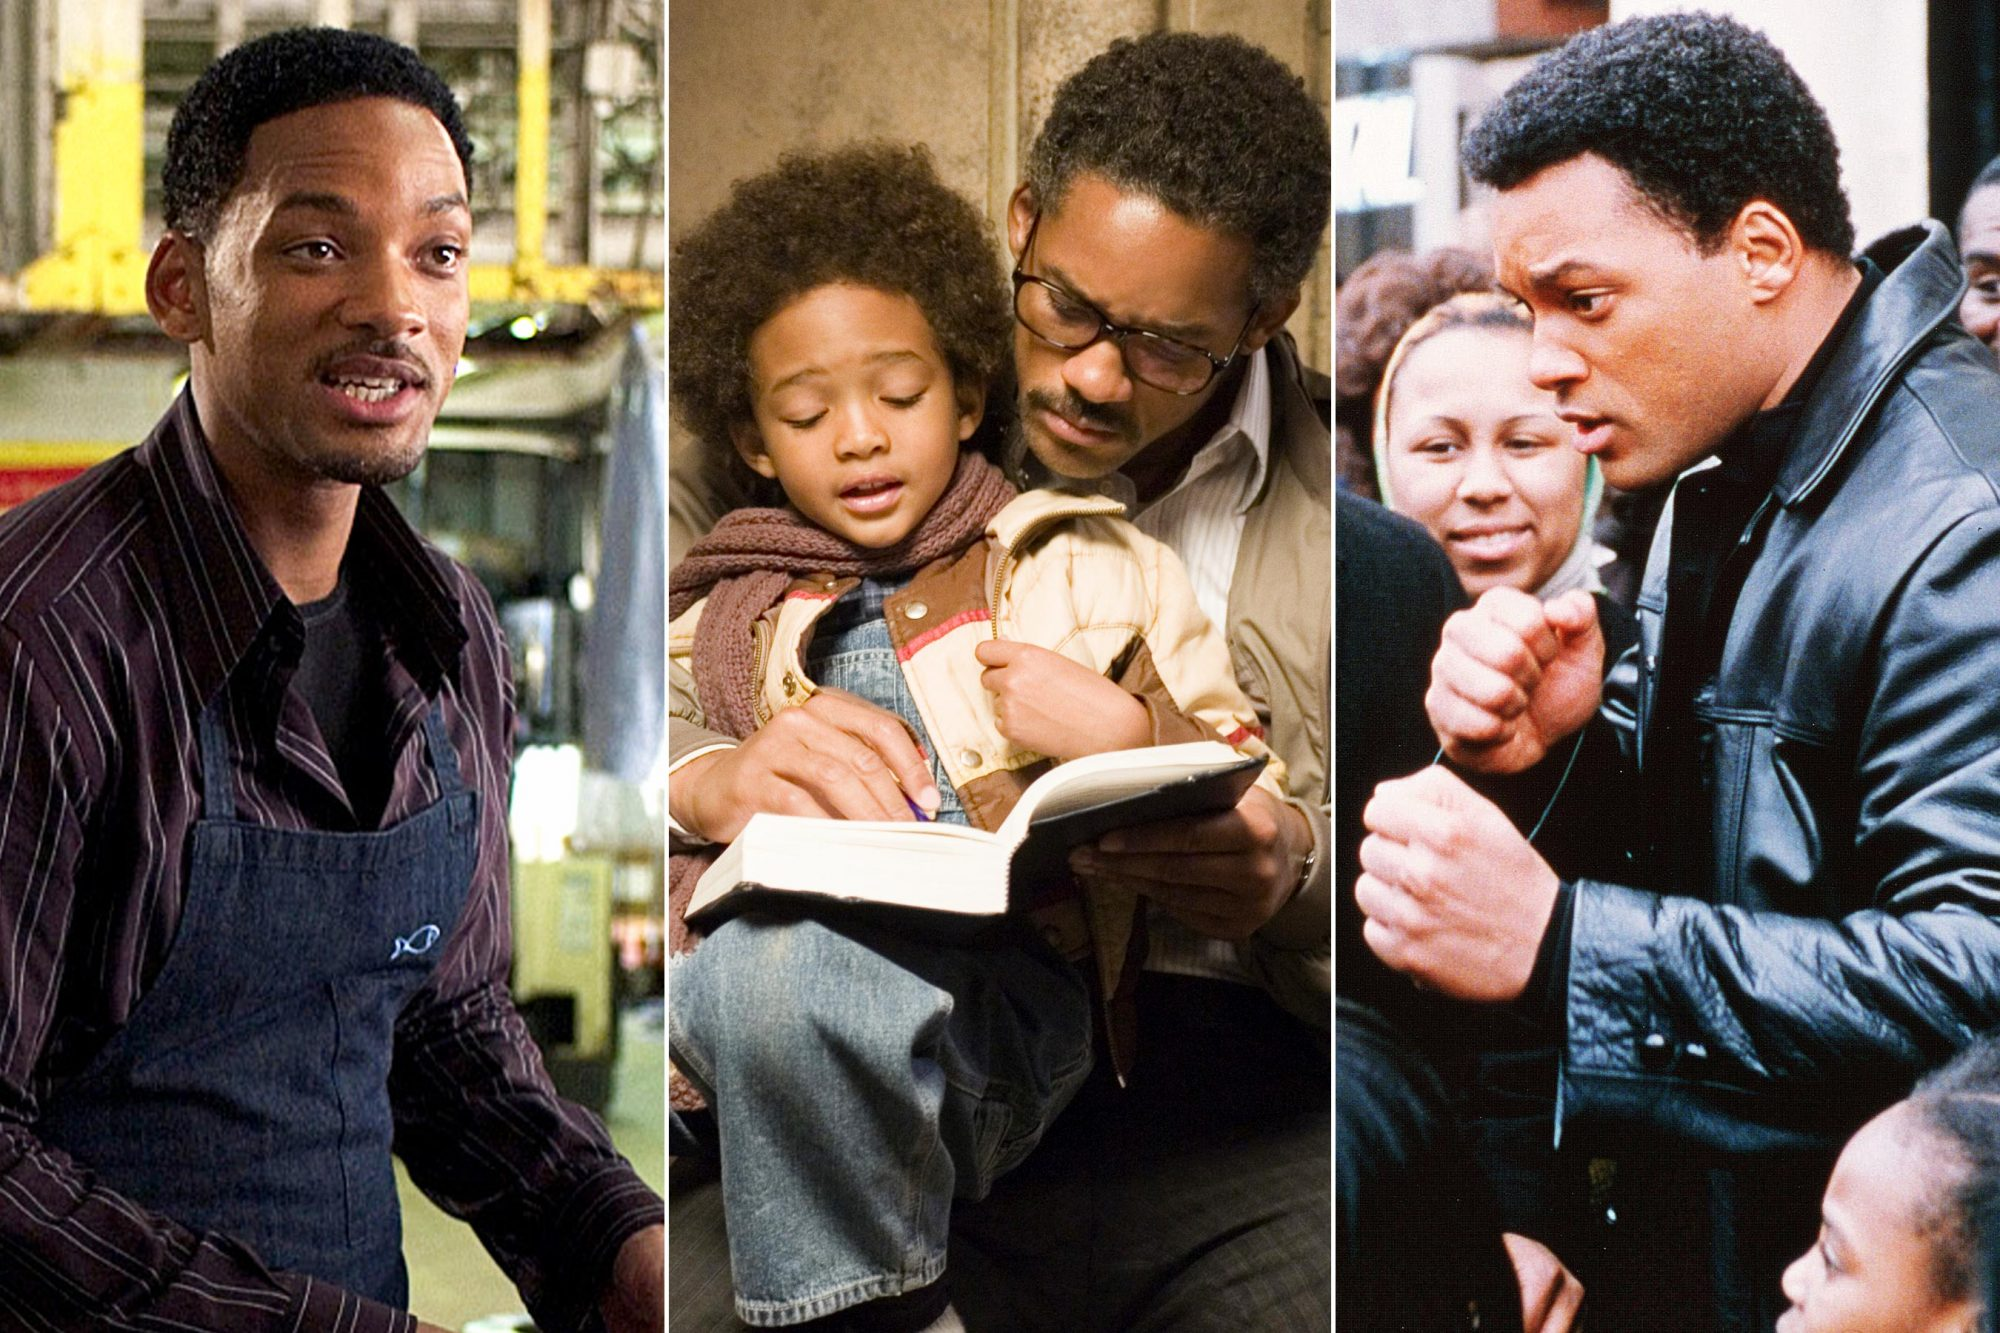 The Pursuit of Ranking Will Smith's Performances